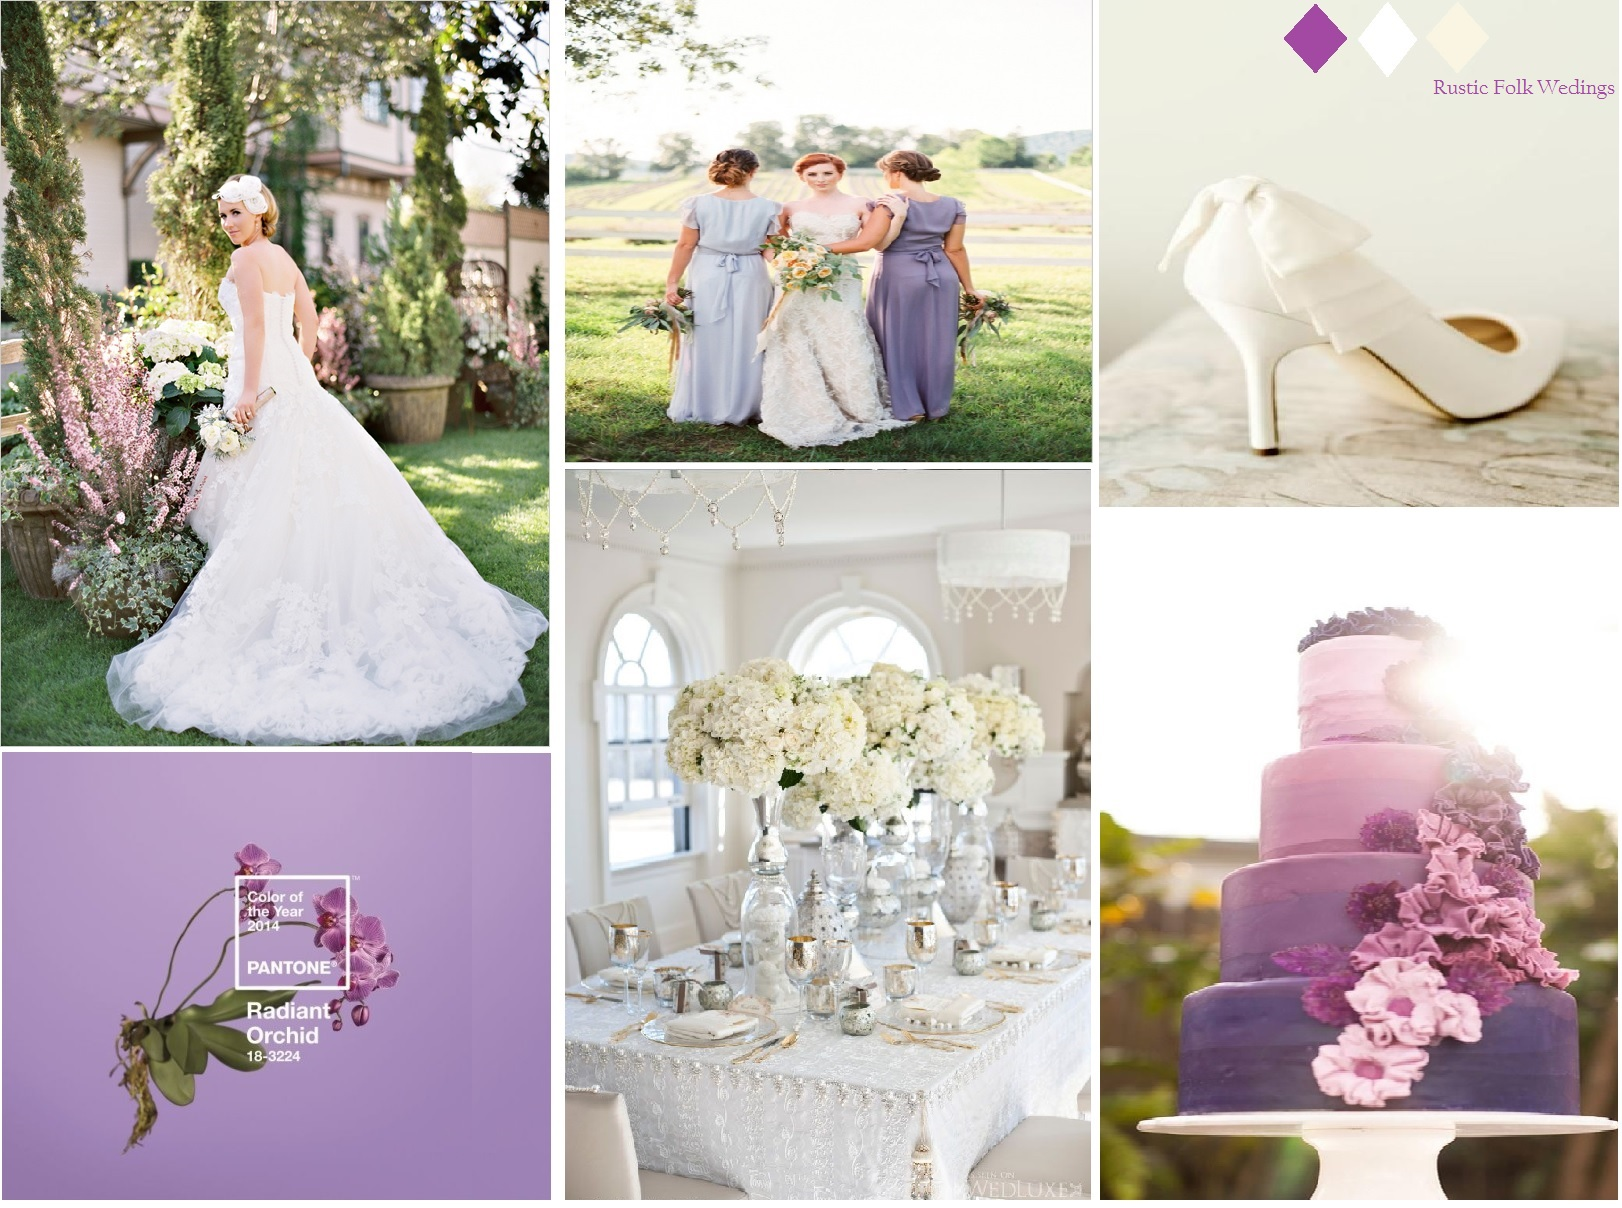 Pantone 2014 Color of the year is Radiant Orchid